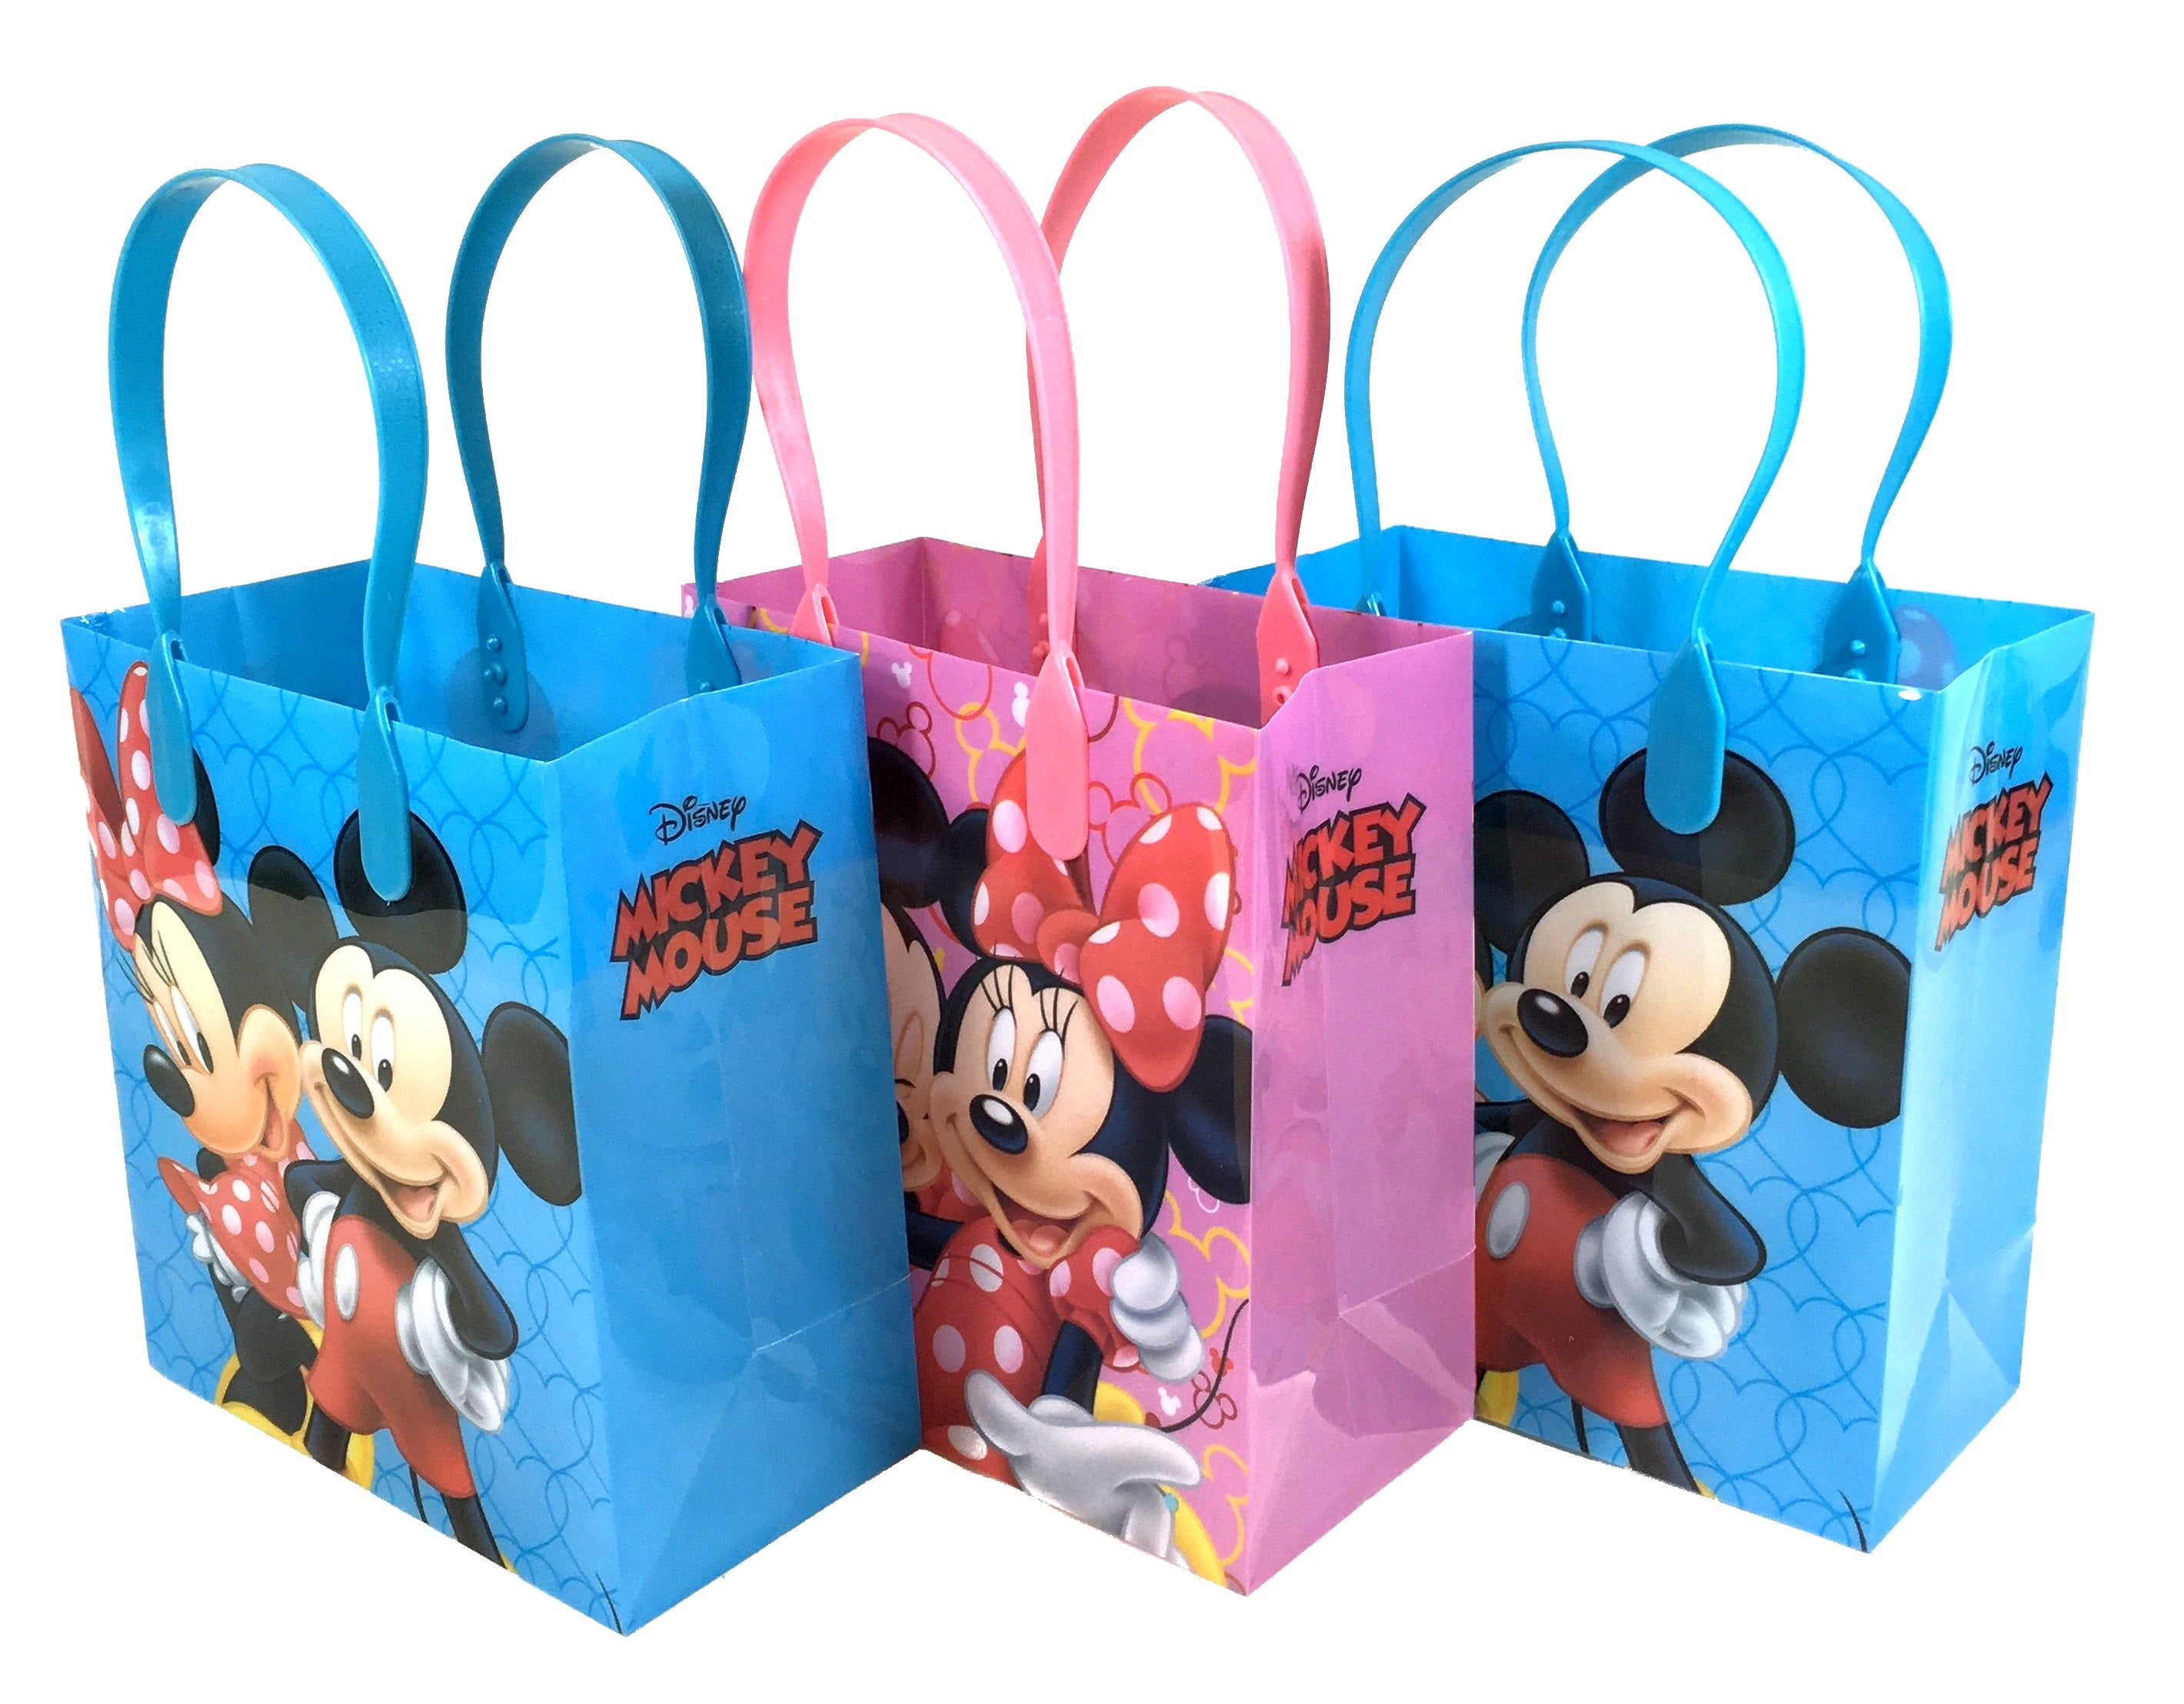 Disney Mickey Mouse Minnie Goody Bags Party Favors Gift